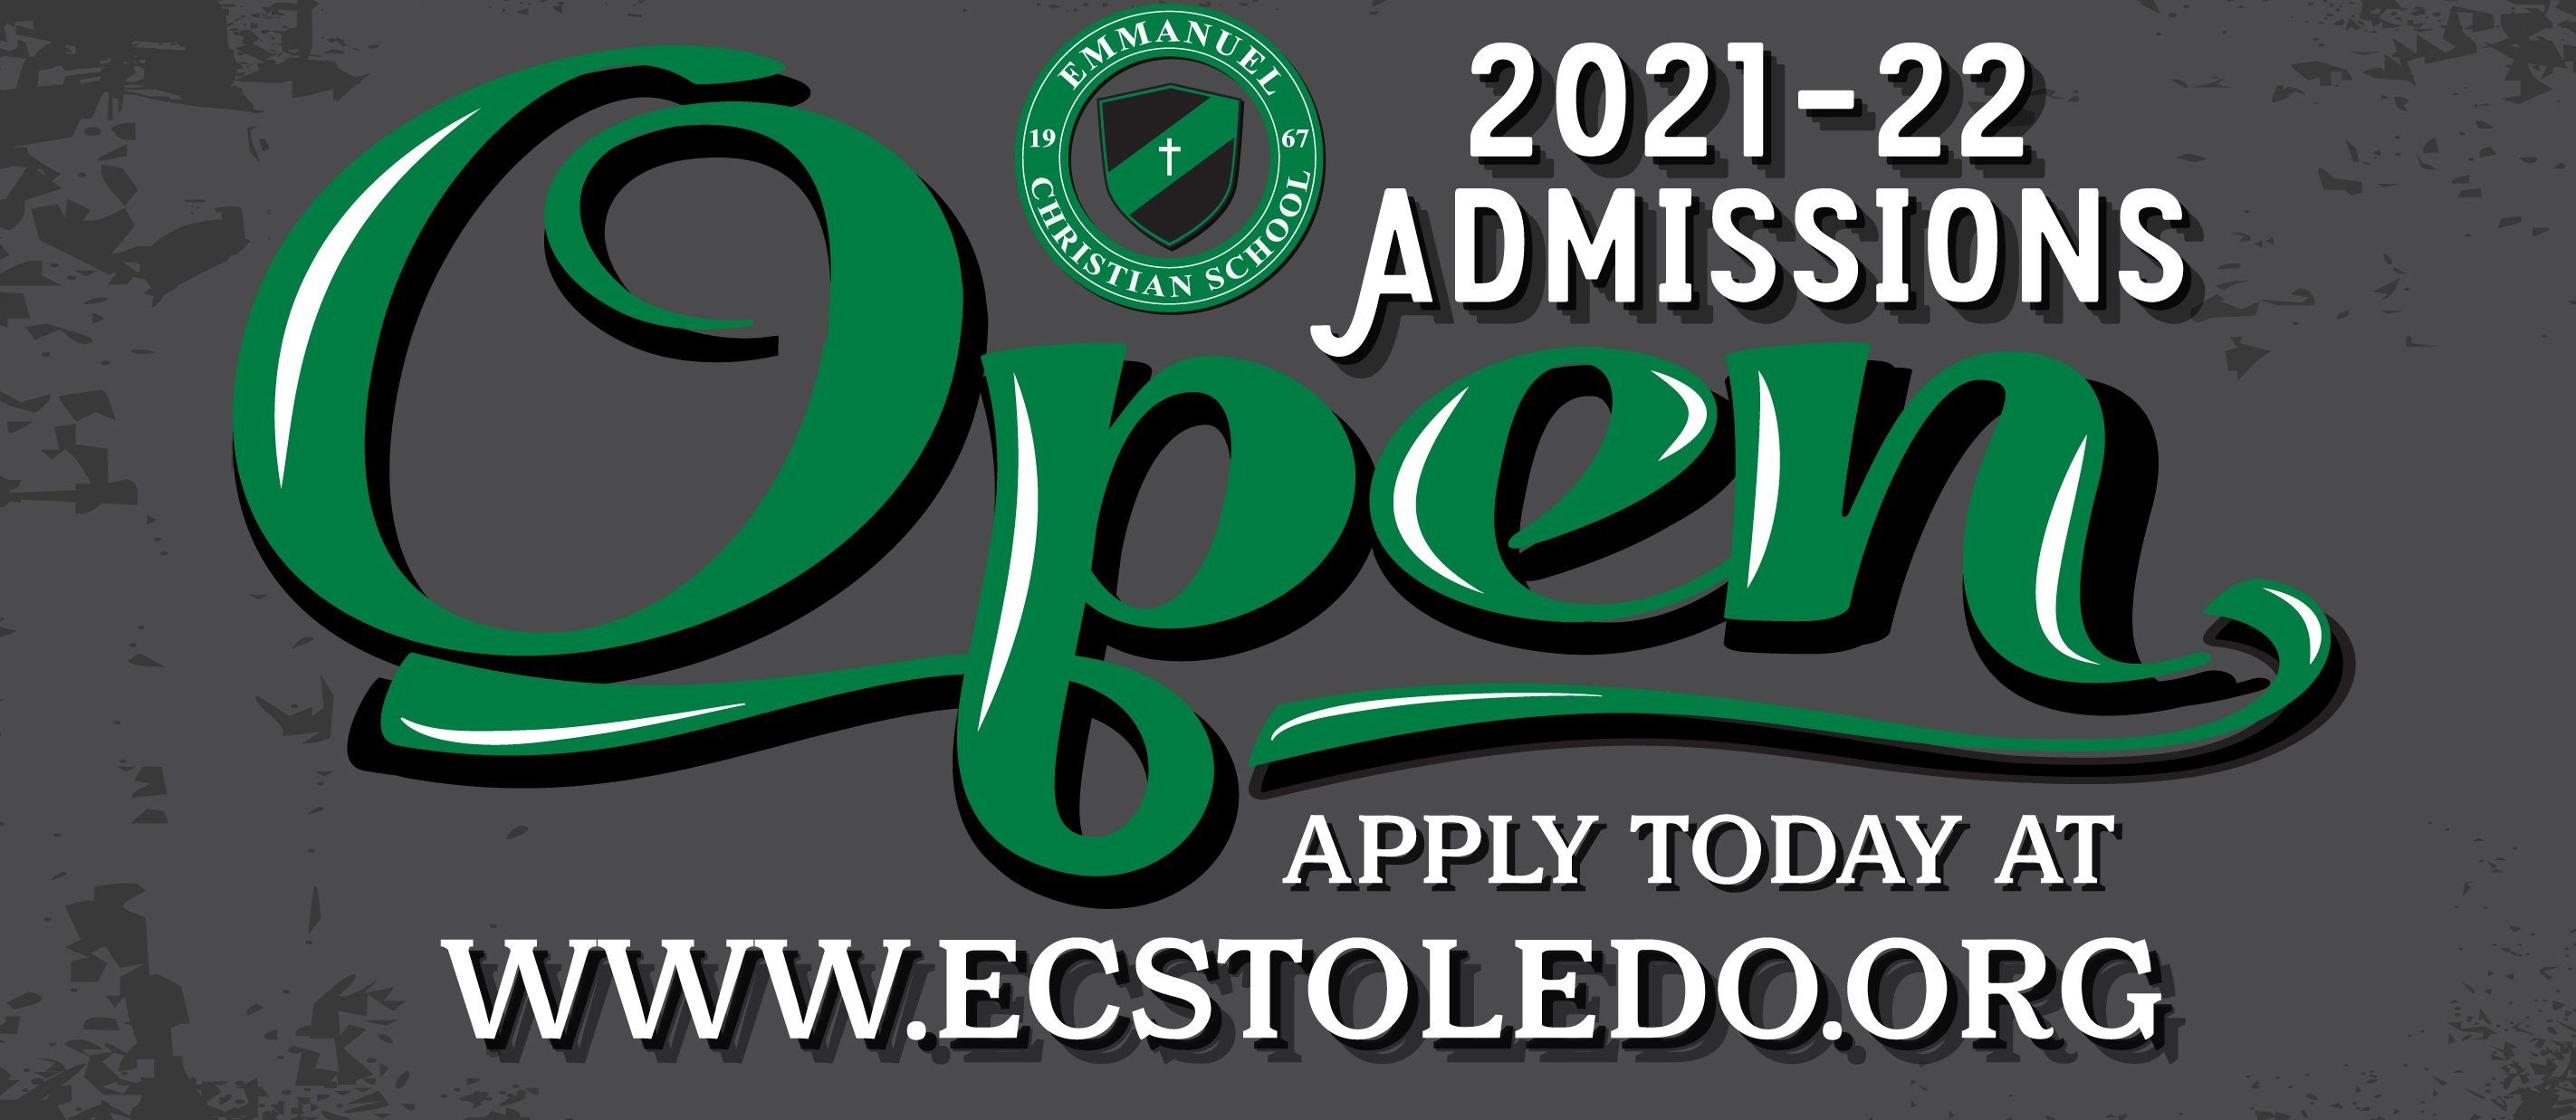 Open admissions, apply today!